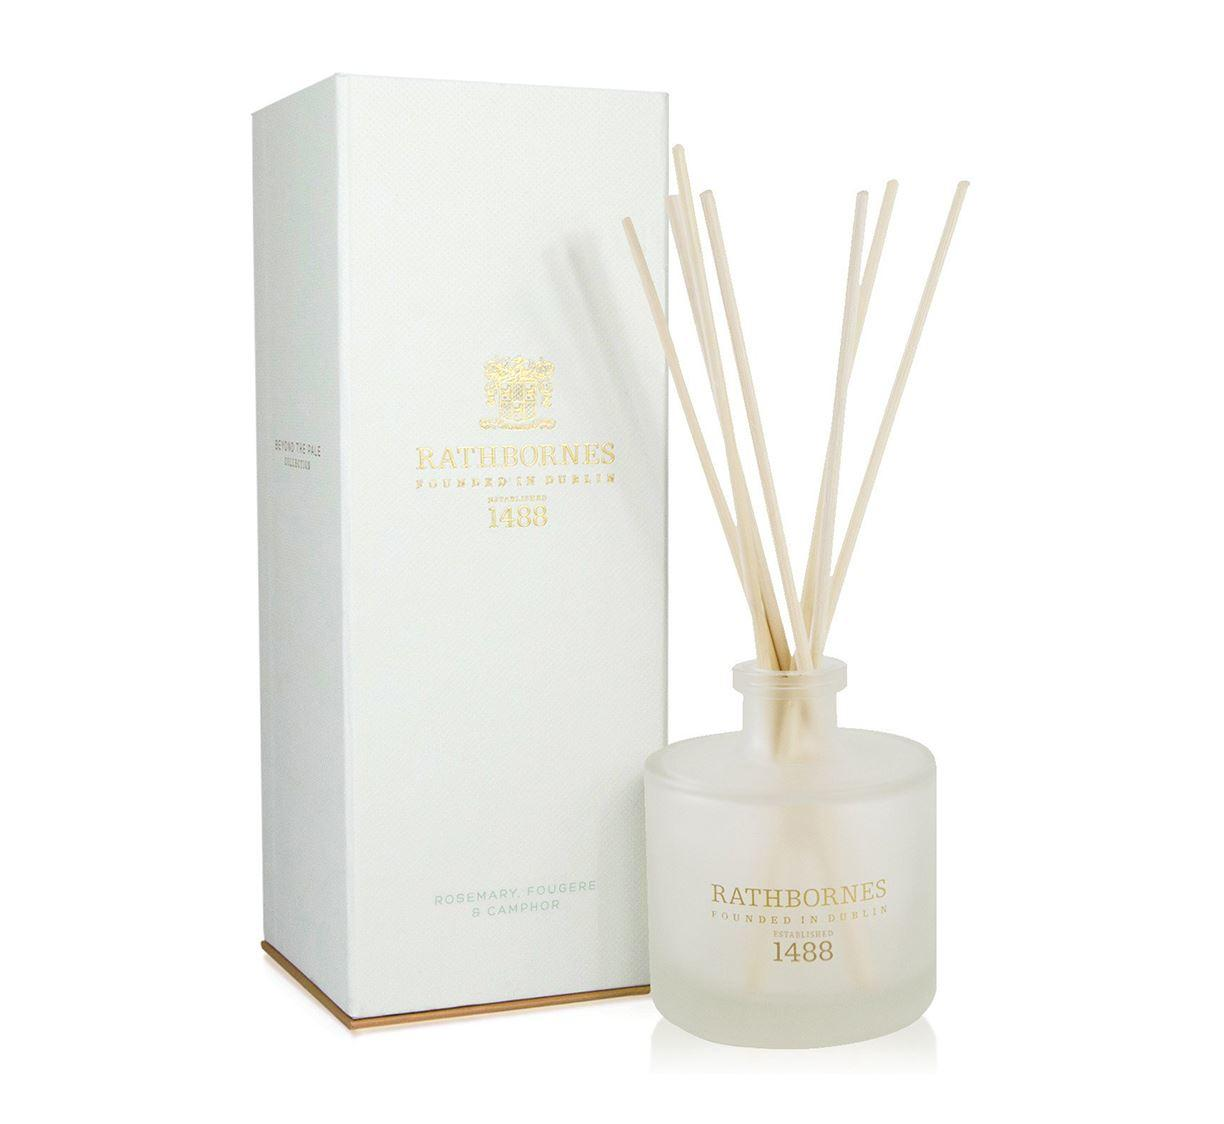 Rathbornes 1488 Rosemary, Fougere & Camphor Scented Reed Diffuser